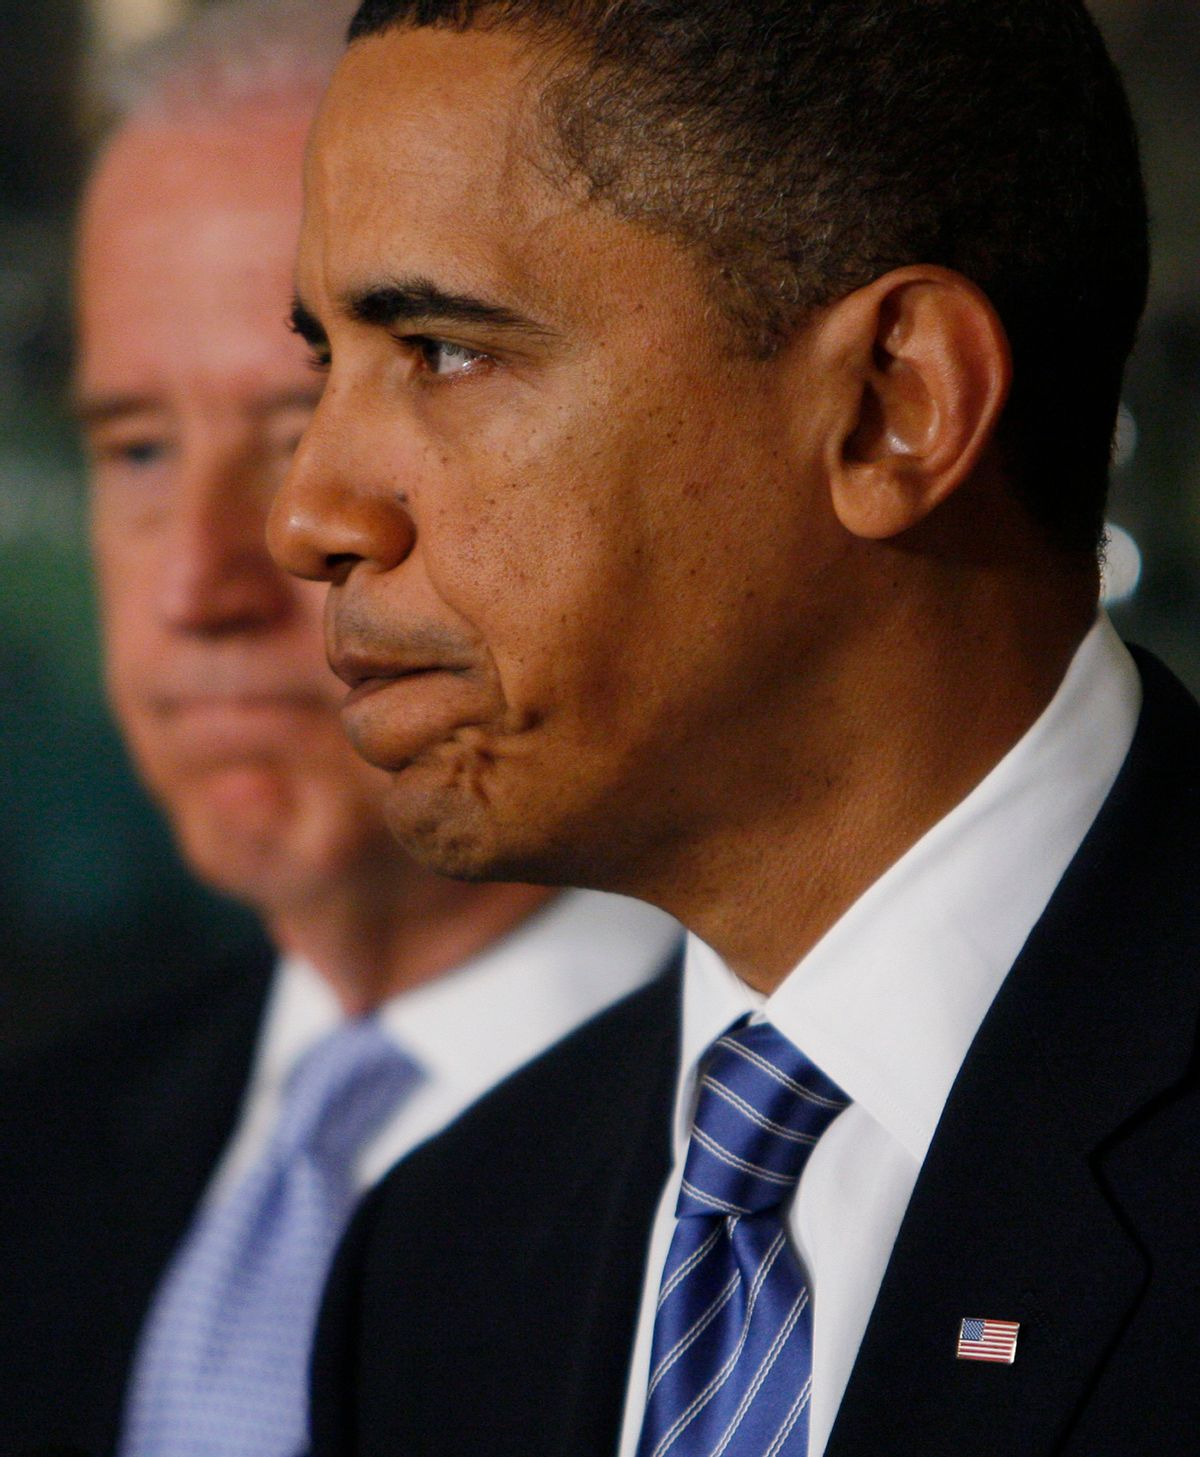 President Barack Obama stands with Vice President Joe Biden as he makes a statement about the earthquake in Haiti,Thursday, Jan. 14, 2010, at the White House in Washington. (AP Photo/Charles Dharapak)  (Associated Press)